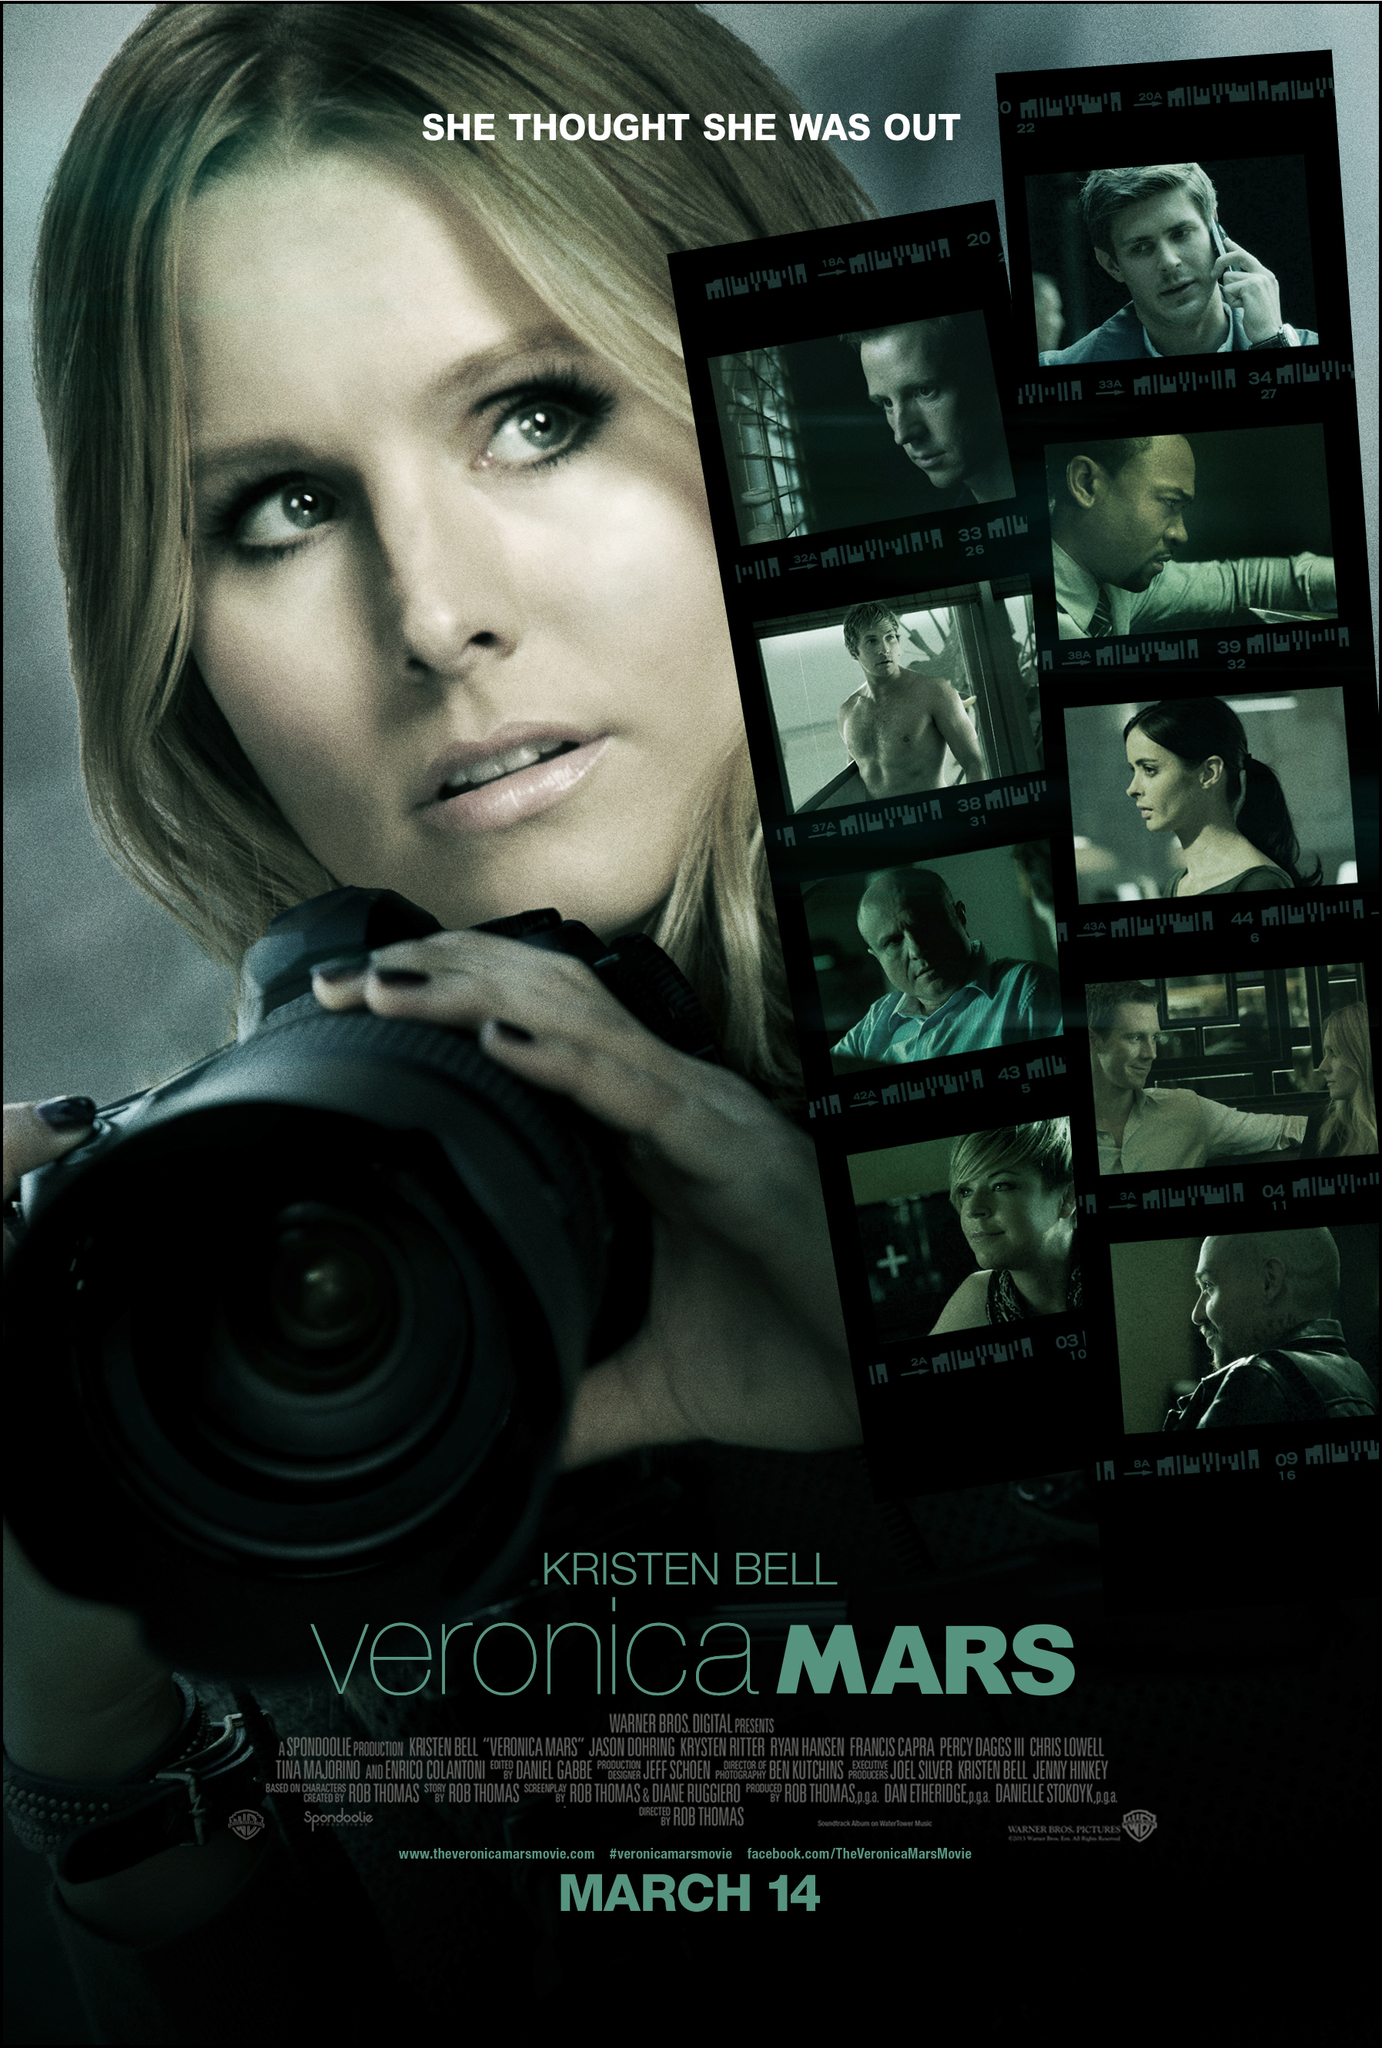 The film poster showing Veronica Mars (Kristen Bell) holding a huge camera.